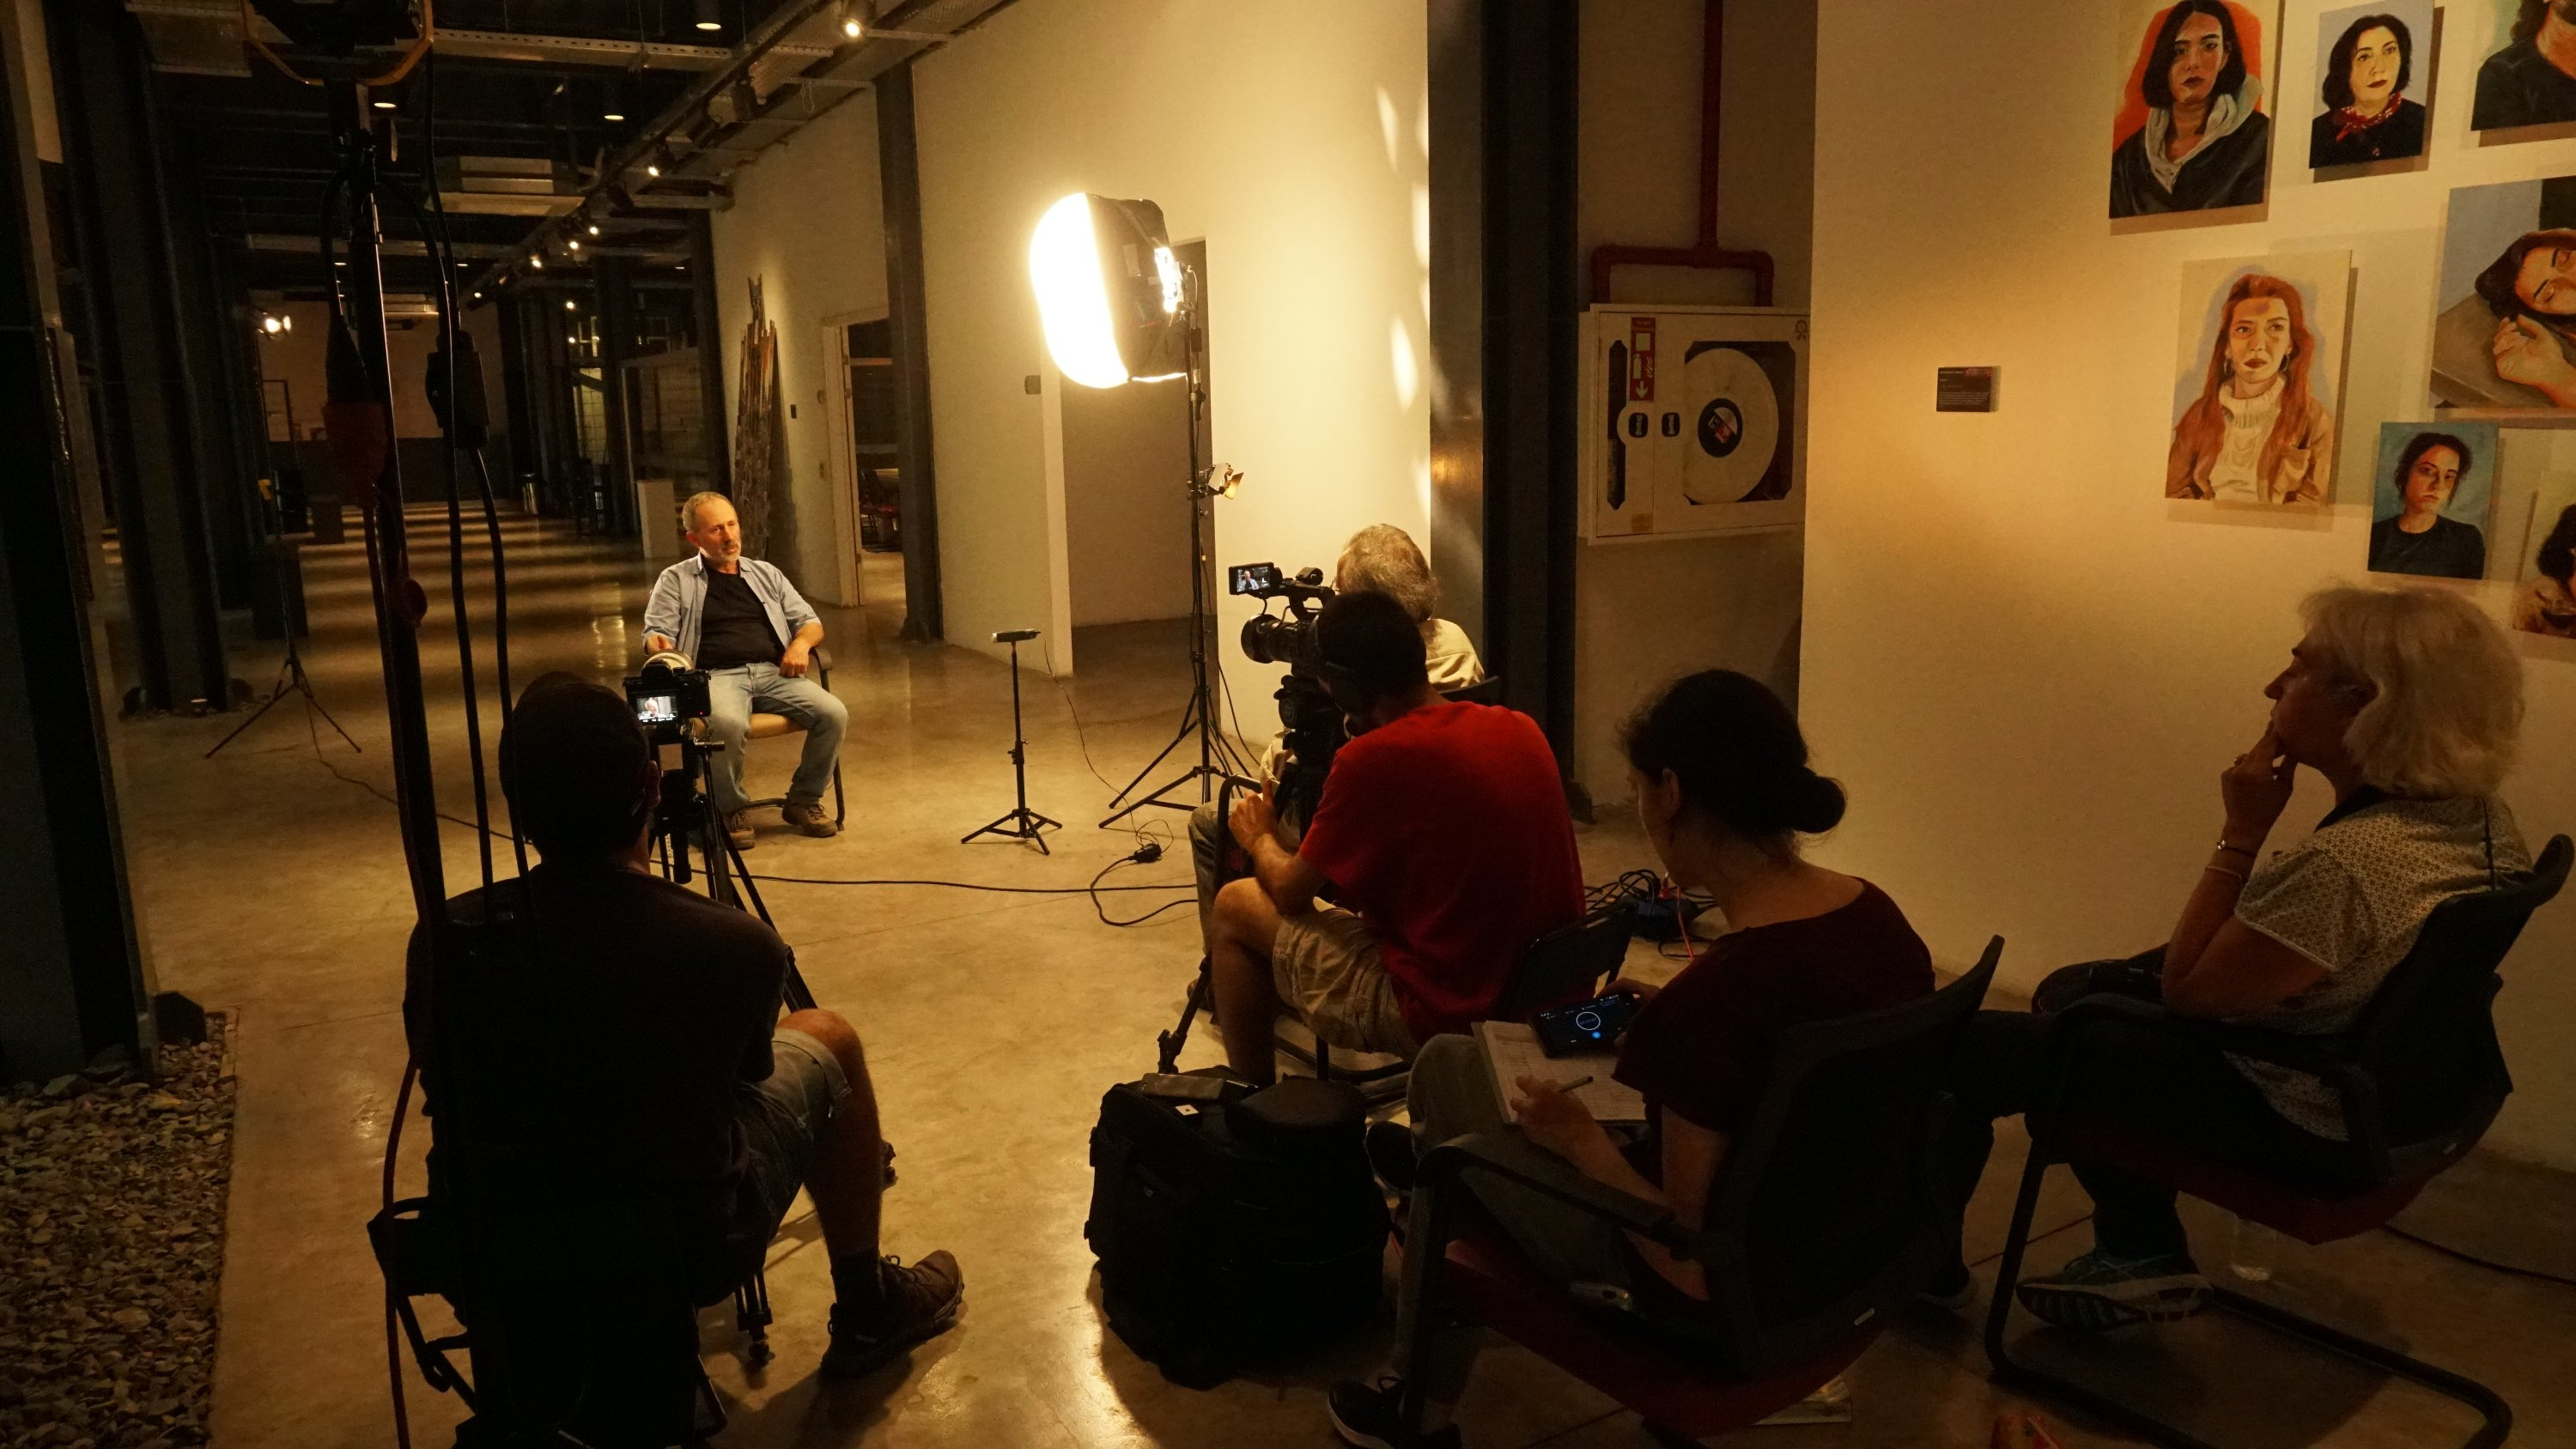 A behind-the-scene photo of the documentary.